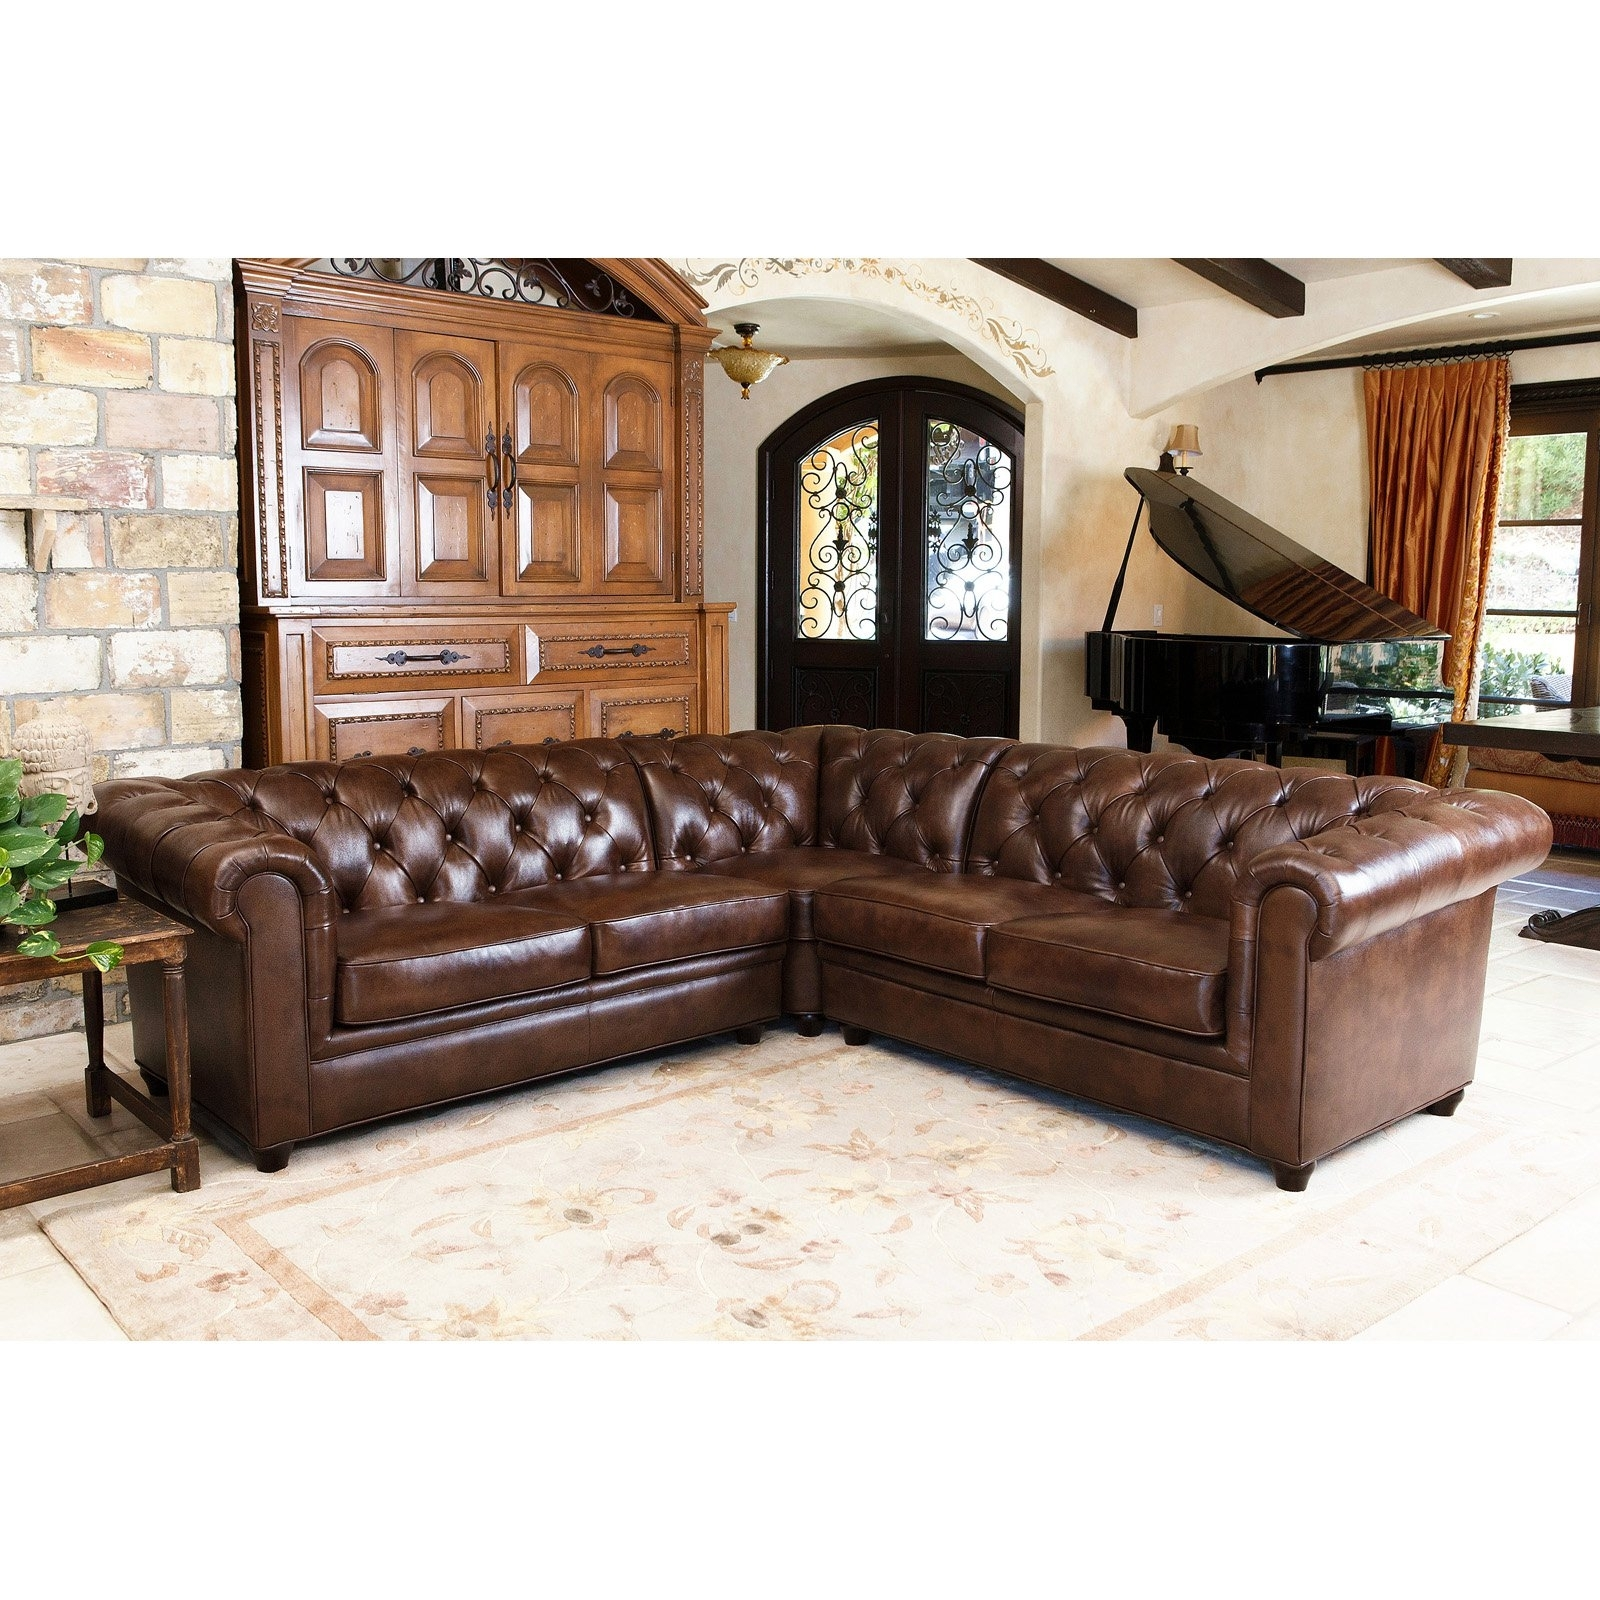 Abbyson Tuscan Top Grain Leather 3 Piece Sectional Sofa | Hayneedle regarding Norfolk Chocolate 6 Piece Sectionals (Image 2 of 30)